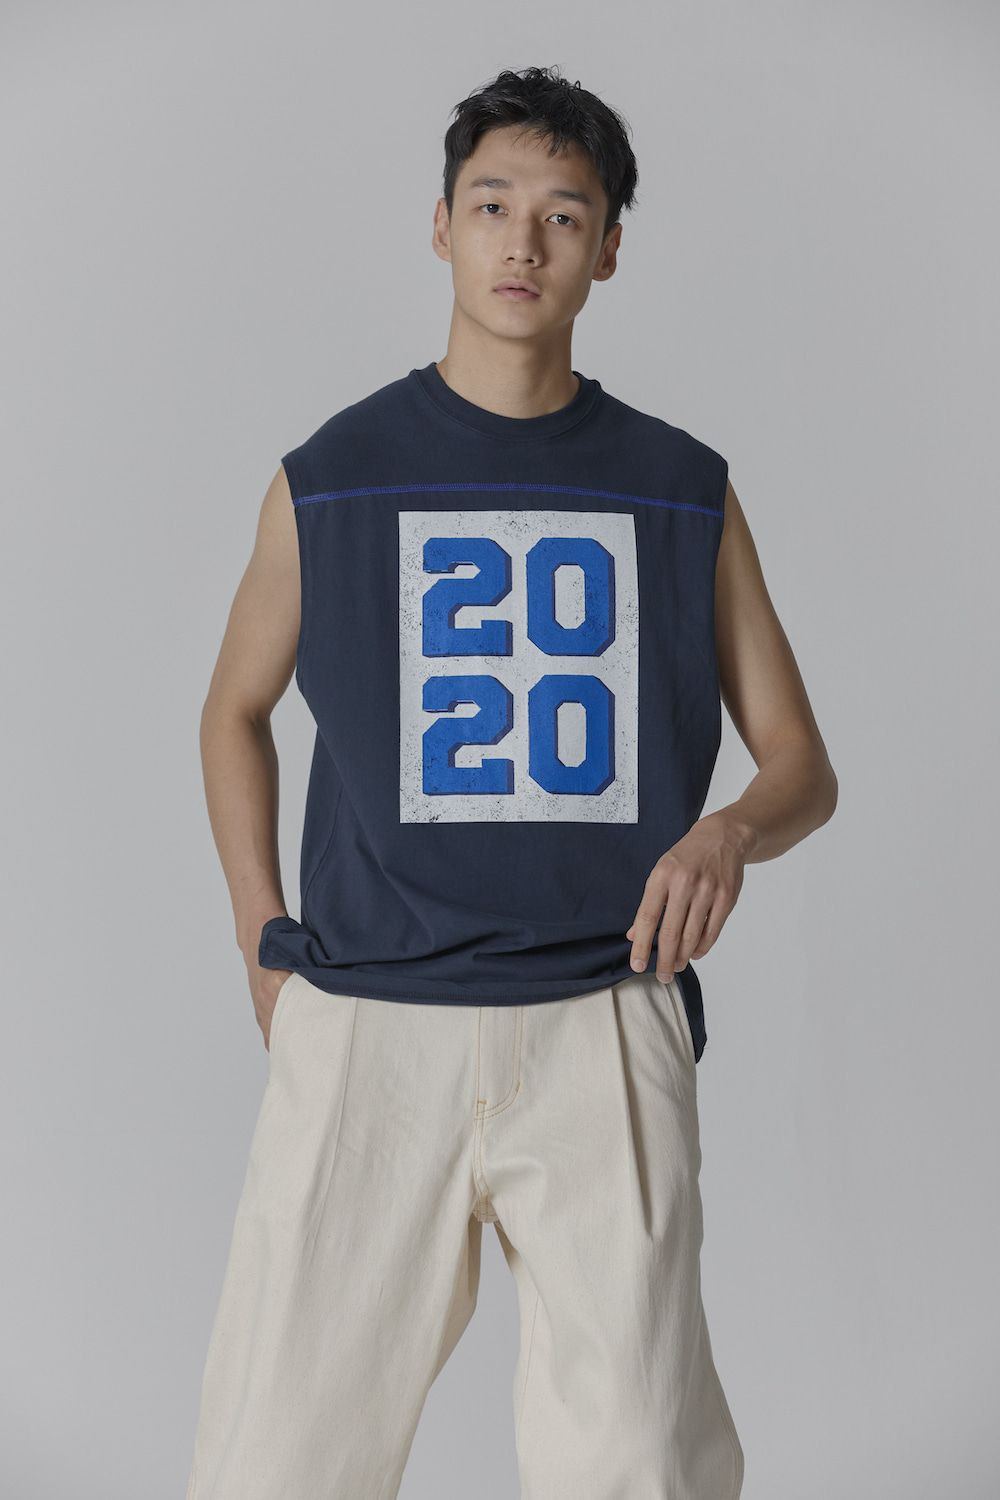 MADE IN SEOUL 2020 SLEEVELESS NAVY